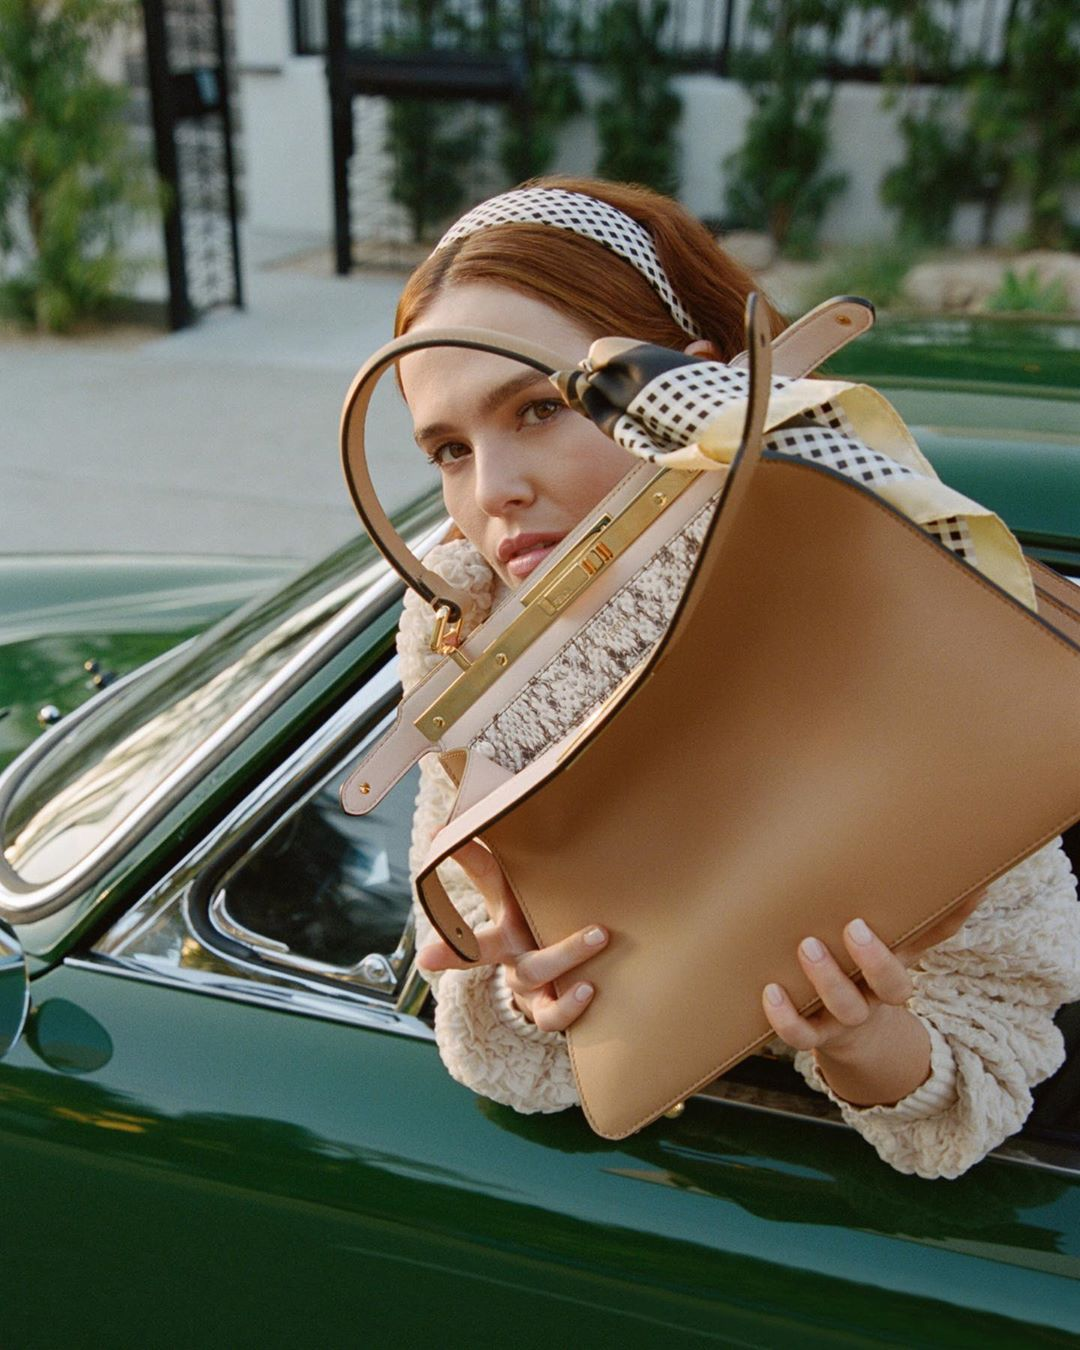 Fendi Fall 2020 Peekaboo Ad Campaign with Zoey Deutch Film & Photos